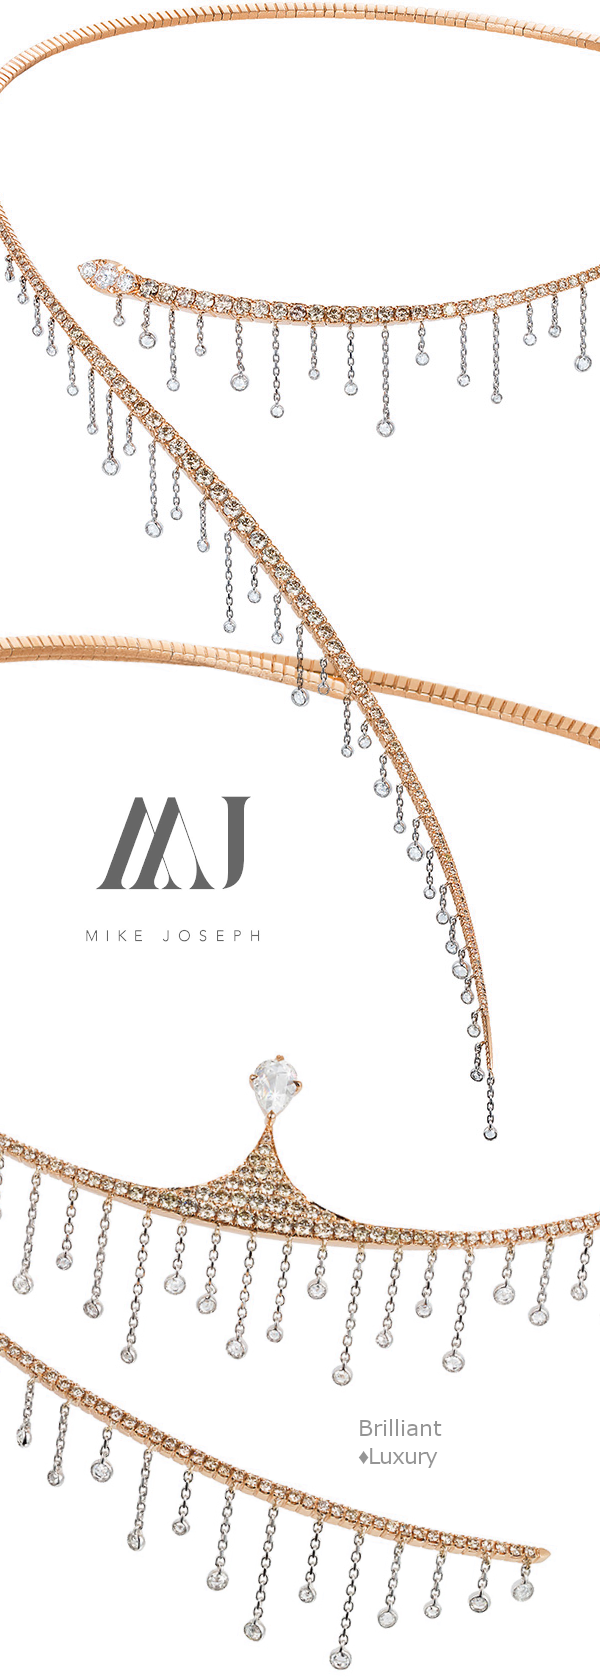 Mike Joseph Waterfall Collection 18k rose and white gold diamond necklaces #jewellery #accessories